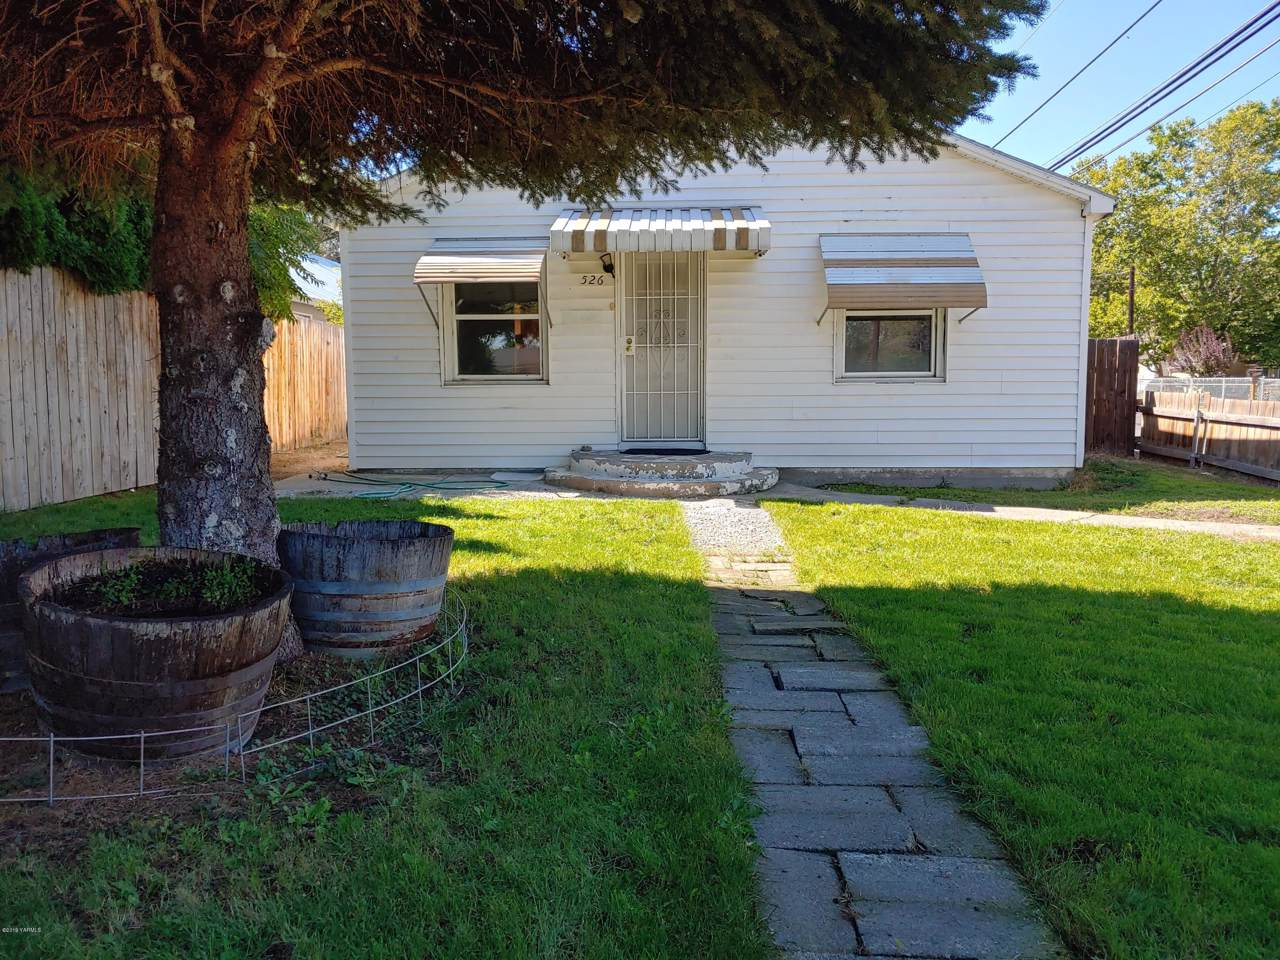 526 24th Ave - Photo 1